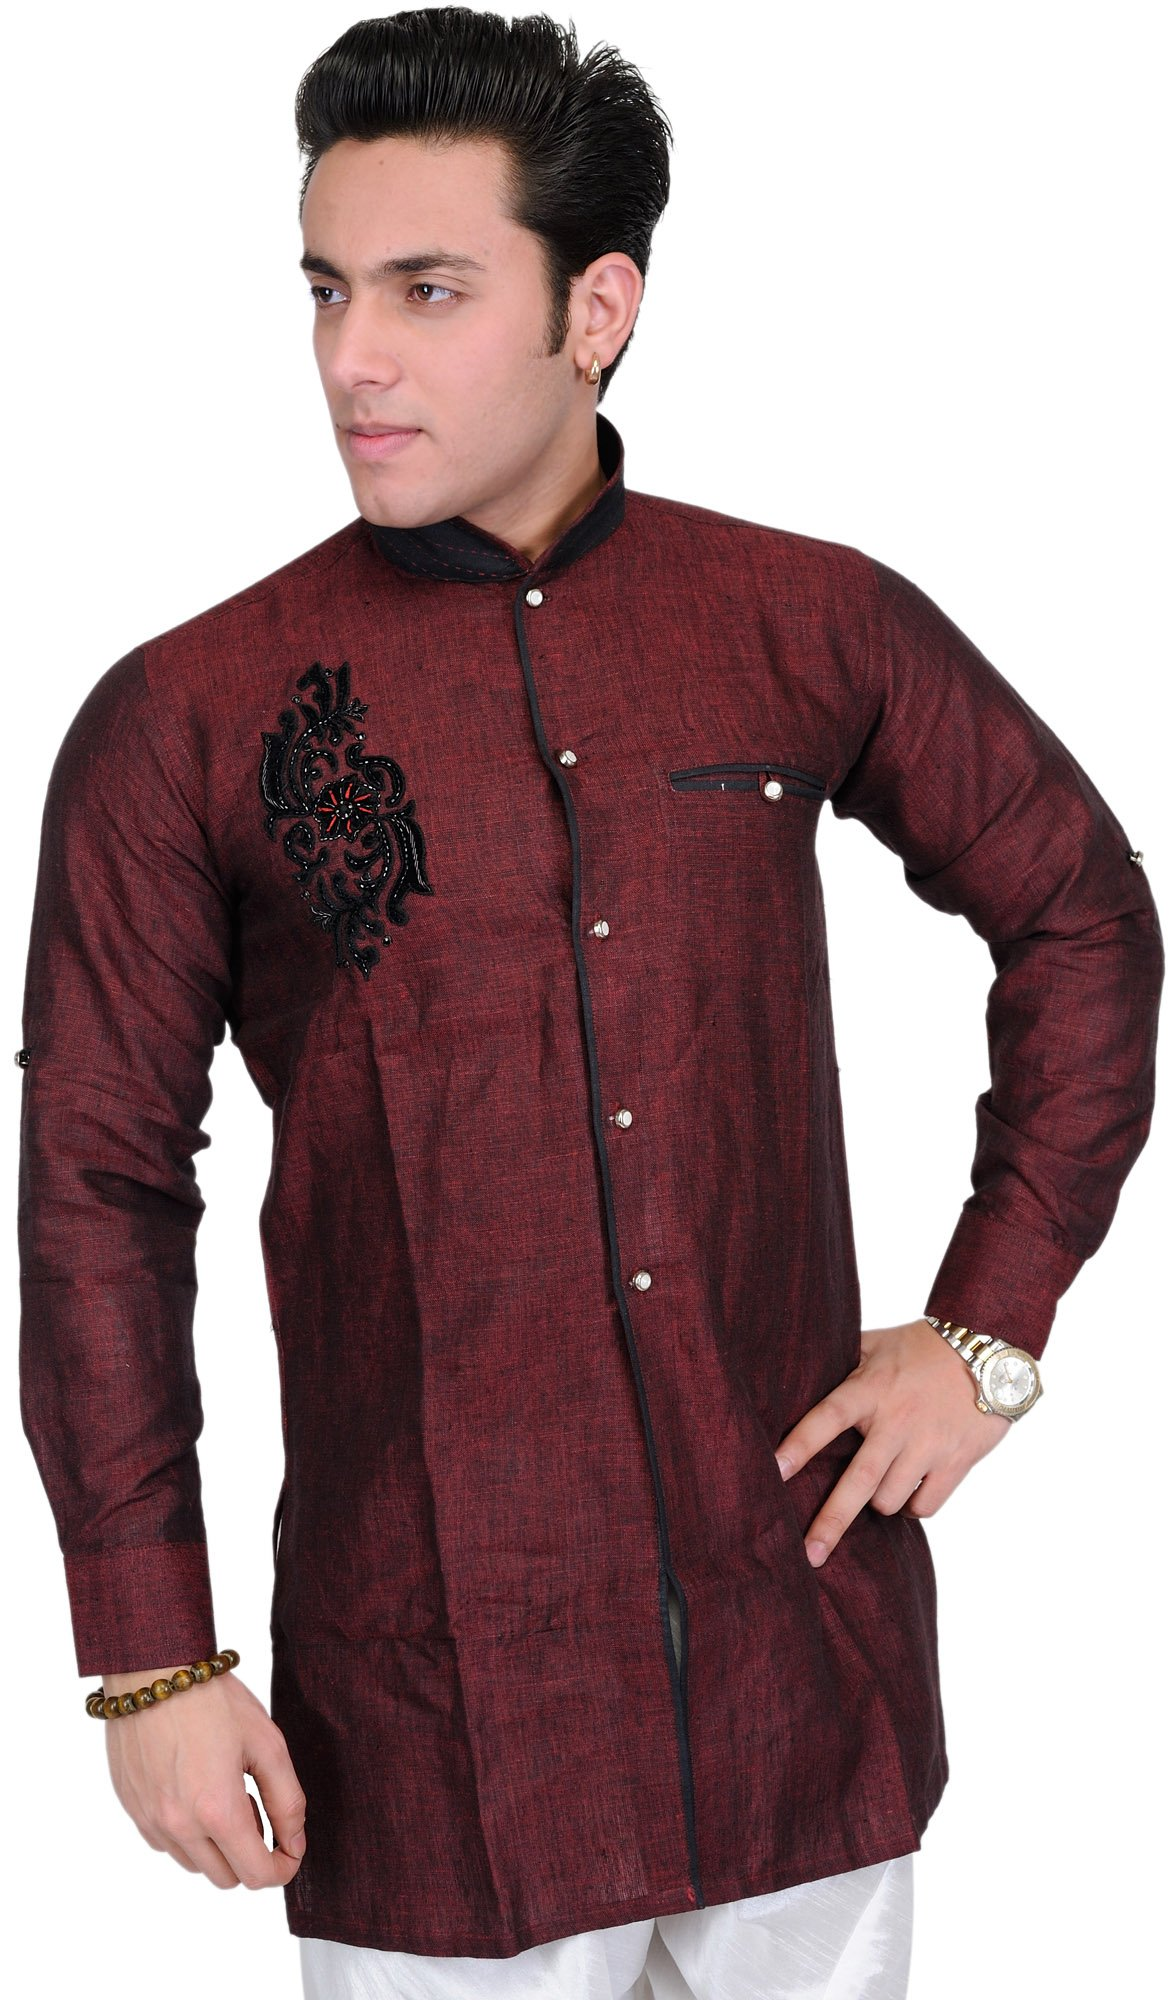 Exotic India Hot-Chocolate Wedding Shirt with Embroider - Black Size 38